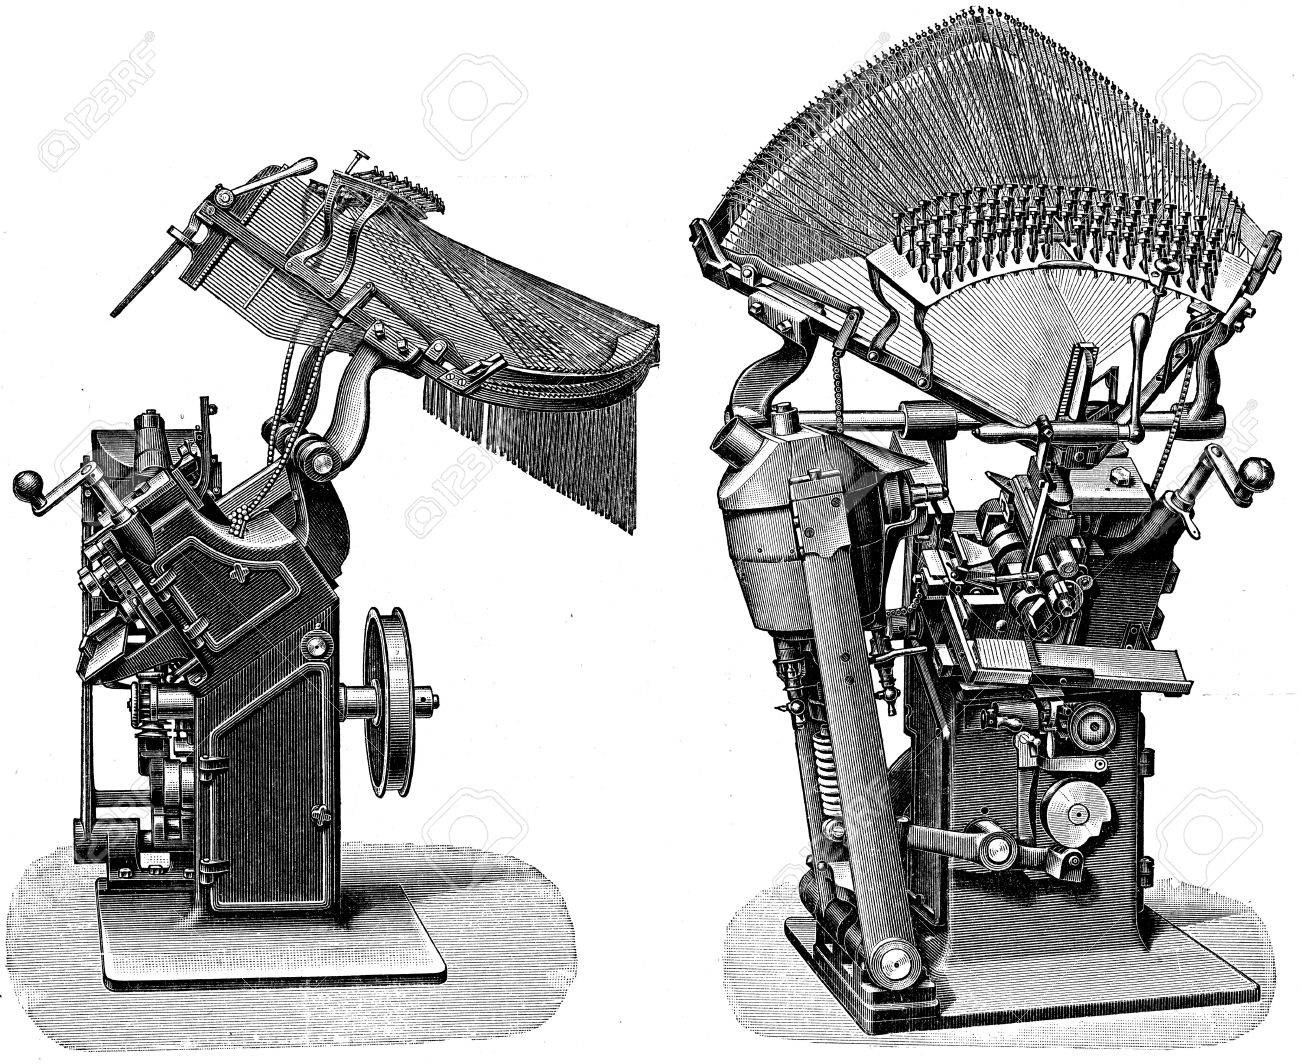 Rogers and Britt typesetter - an illustration of the encyclopedia publishers Education, St  Petersburg, Russian Empire, 1896  Stock Photo - 14520720